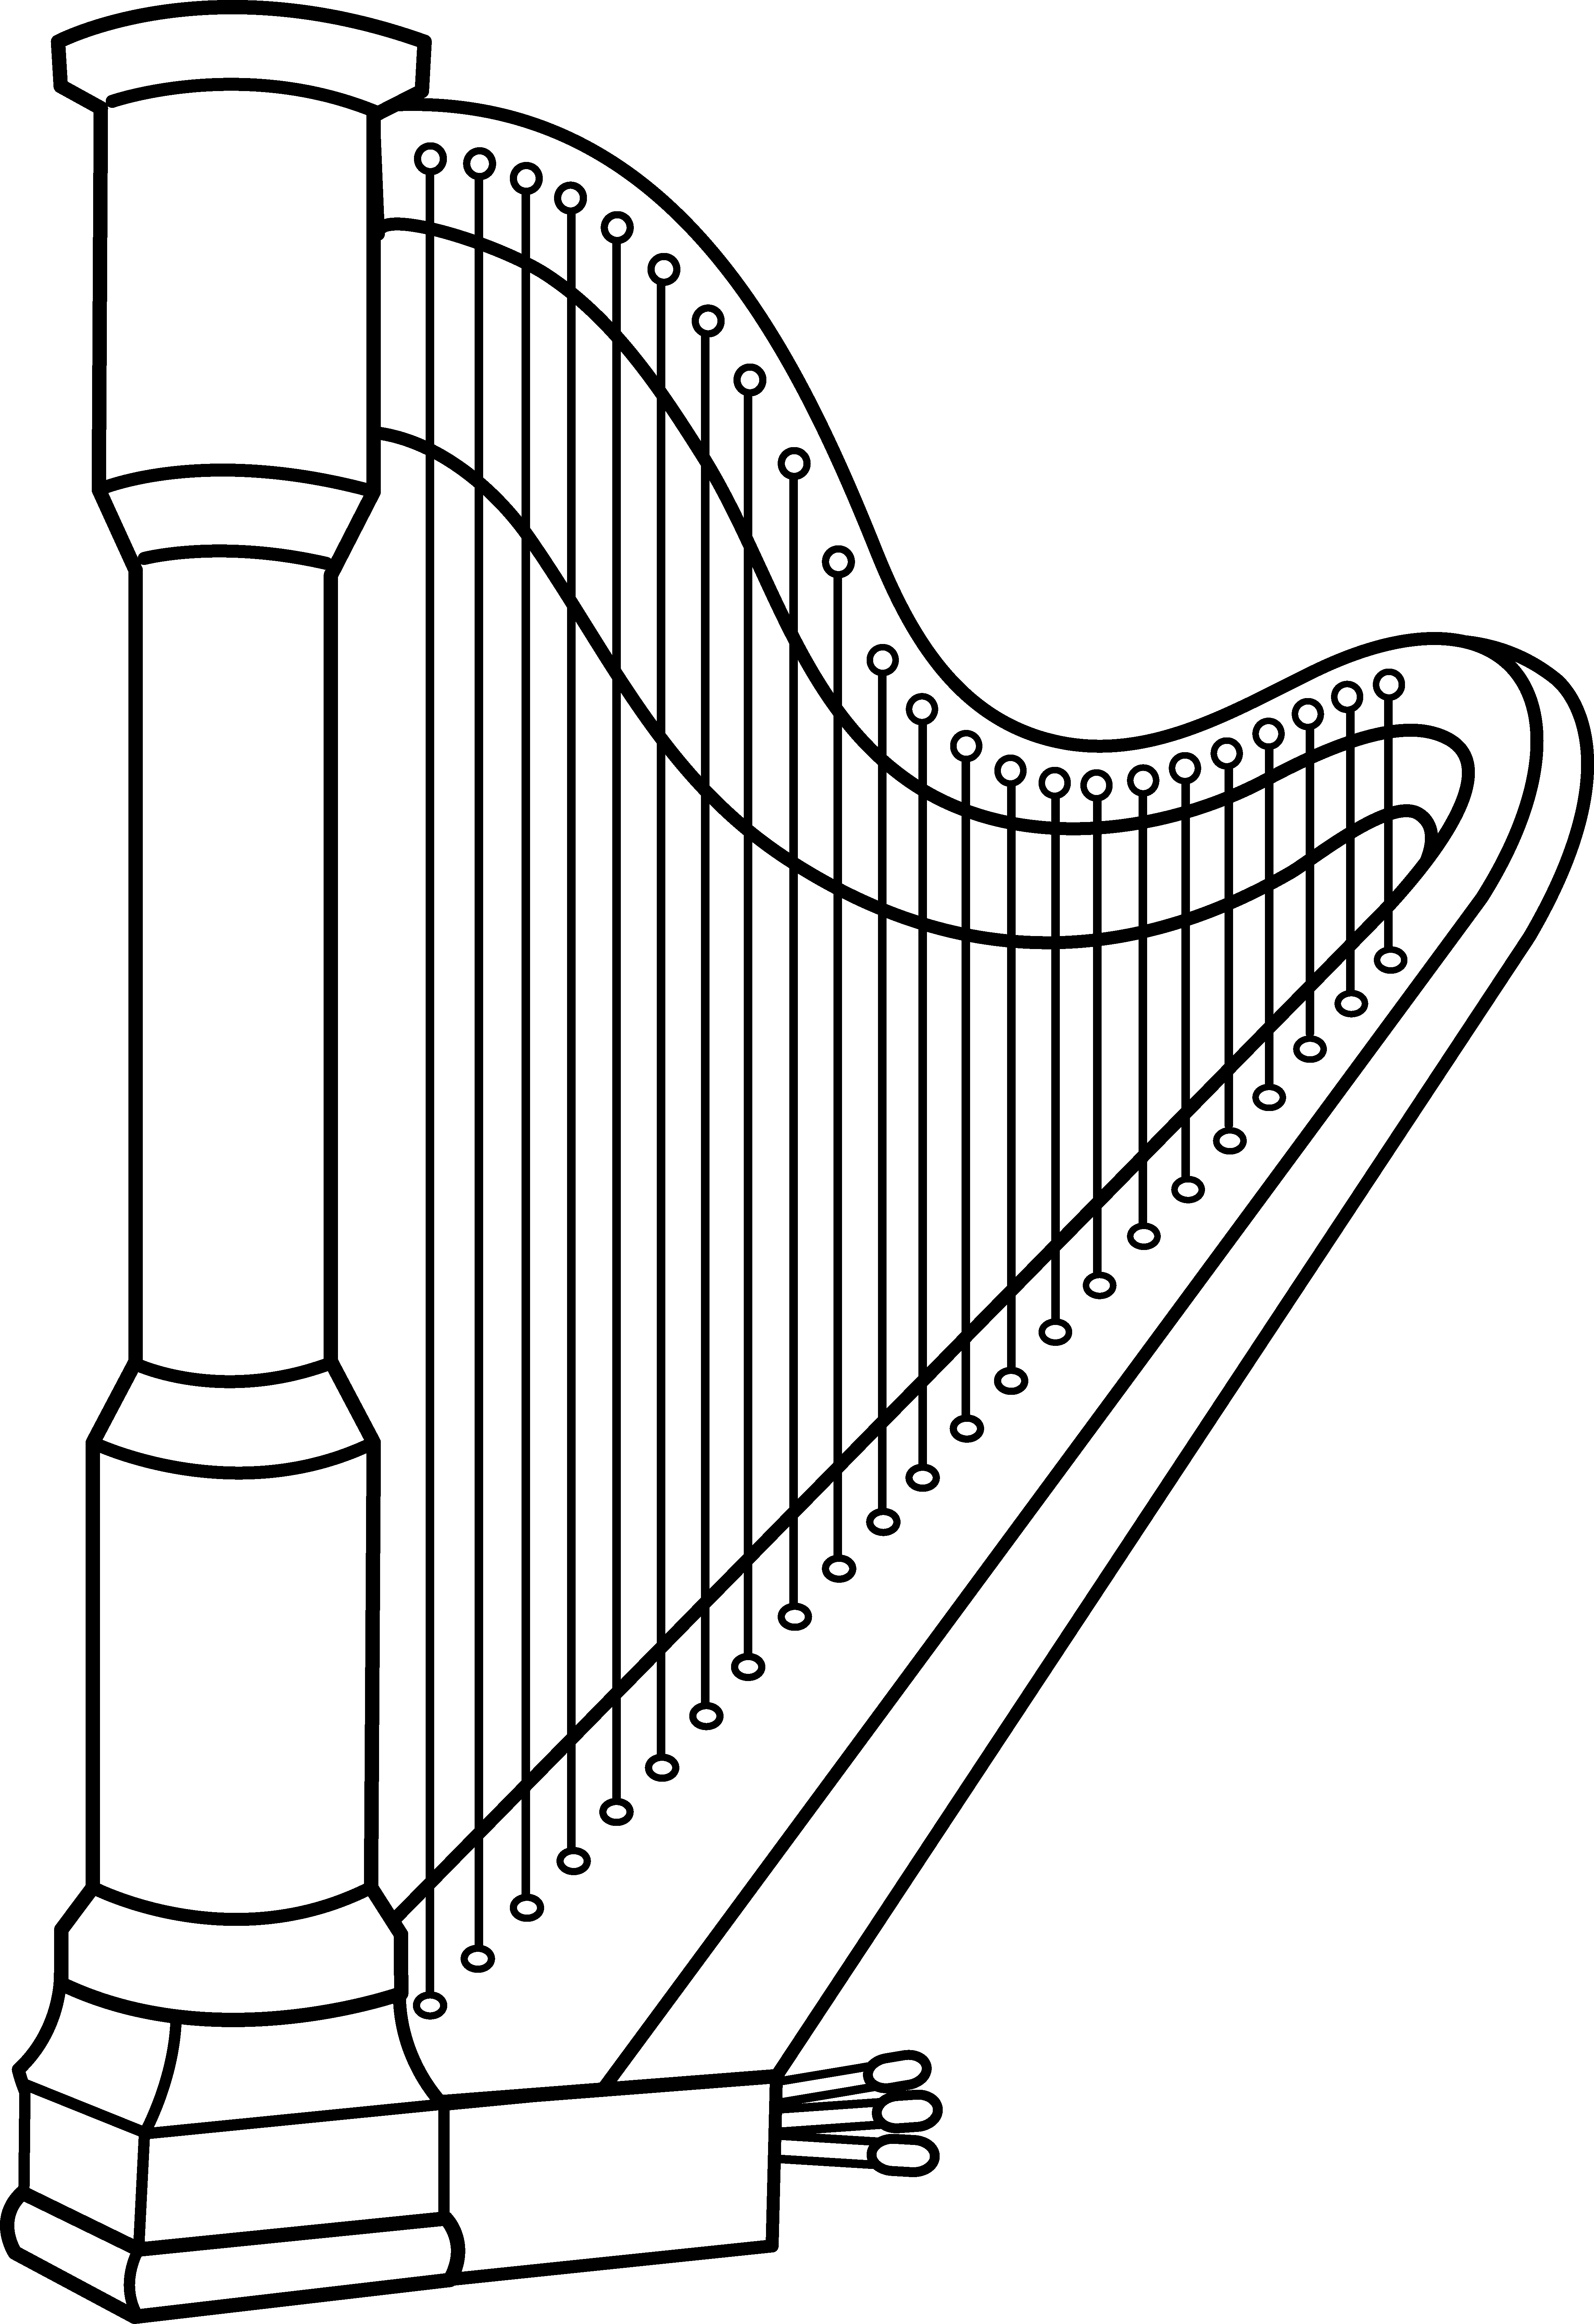 image royalty free library Instrument harmonica free on. Musical instruments clipart black and white